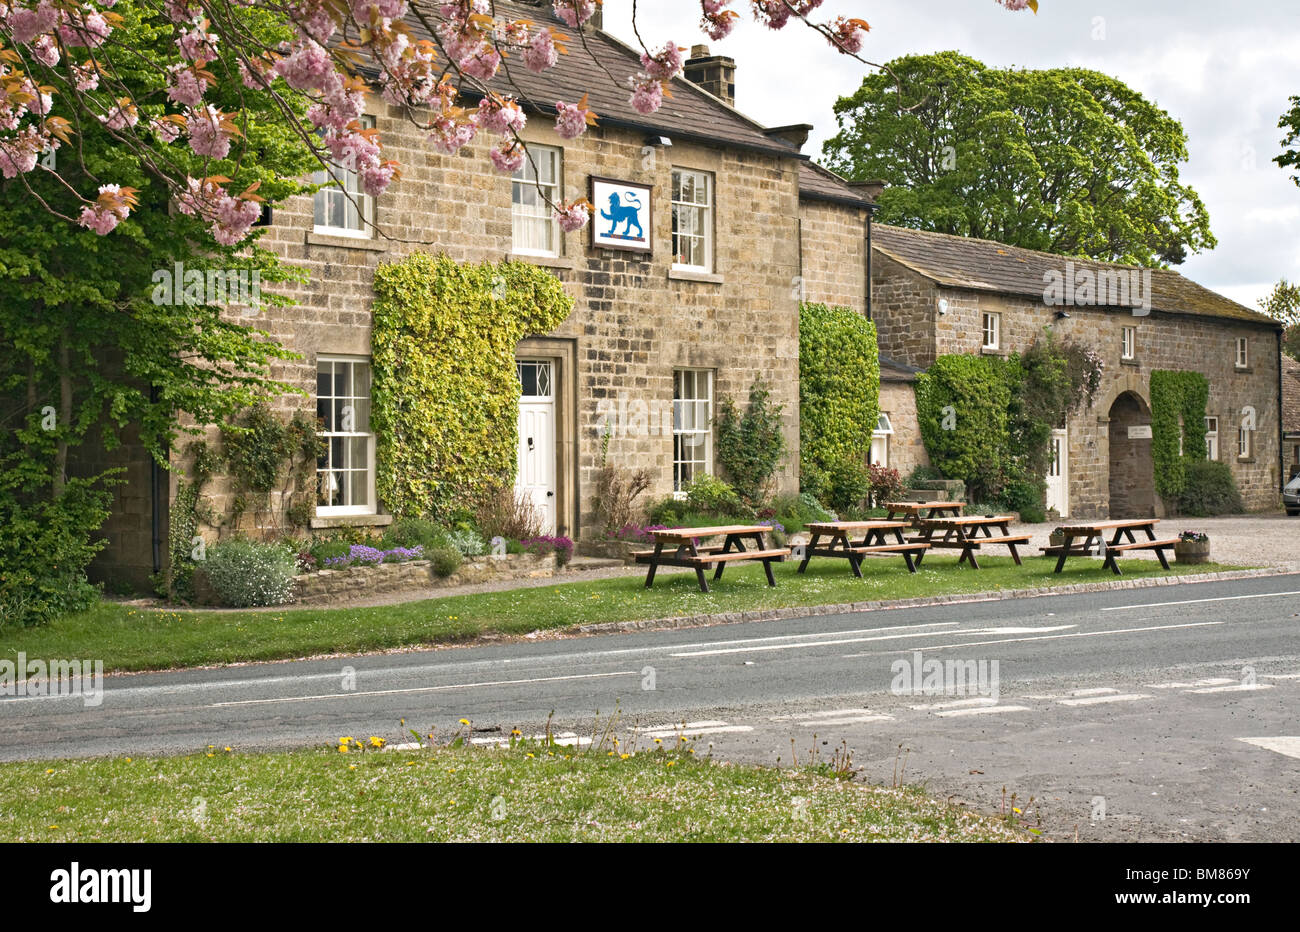 The Blue Lion, East Witton, North Yorkshire - Stock Image